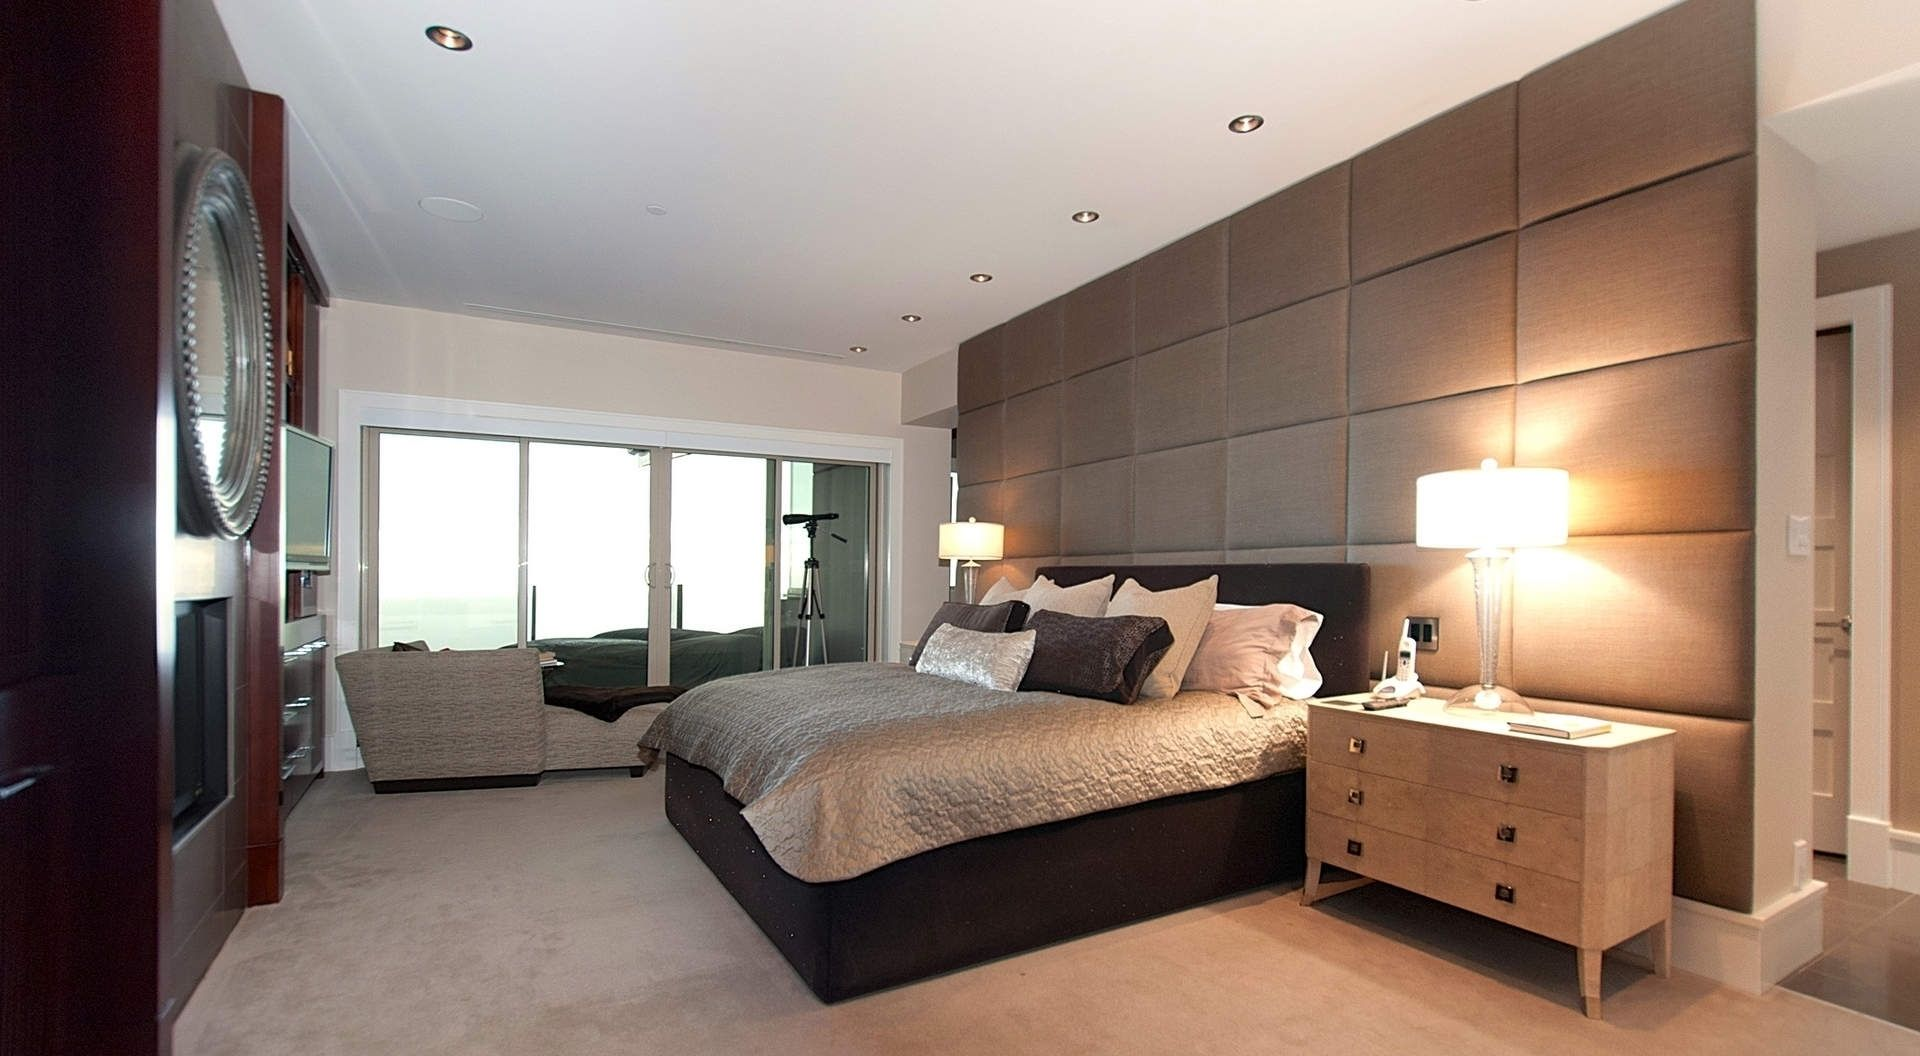 10 Top Houzz Master Bedroom Ideas For Your House